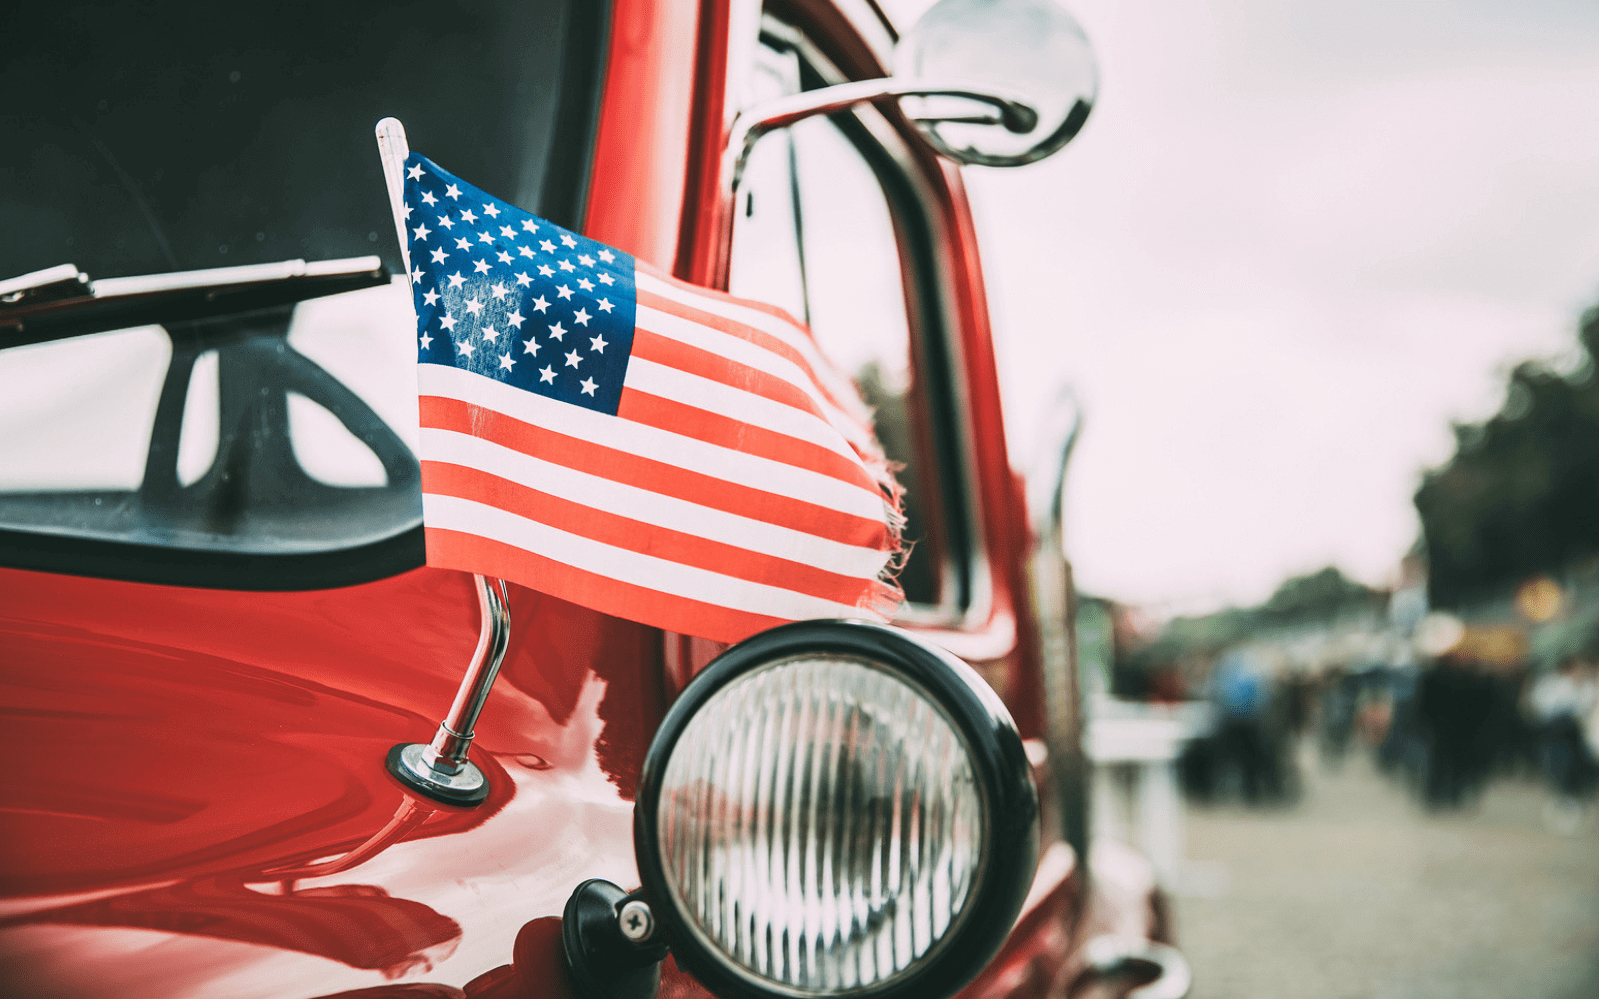 Red truck with American flag